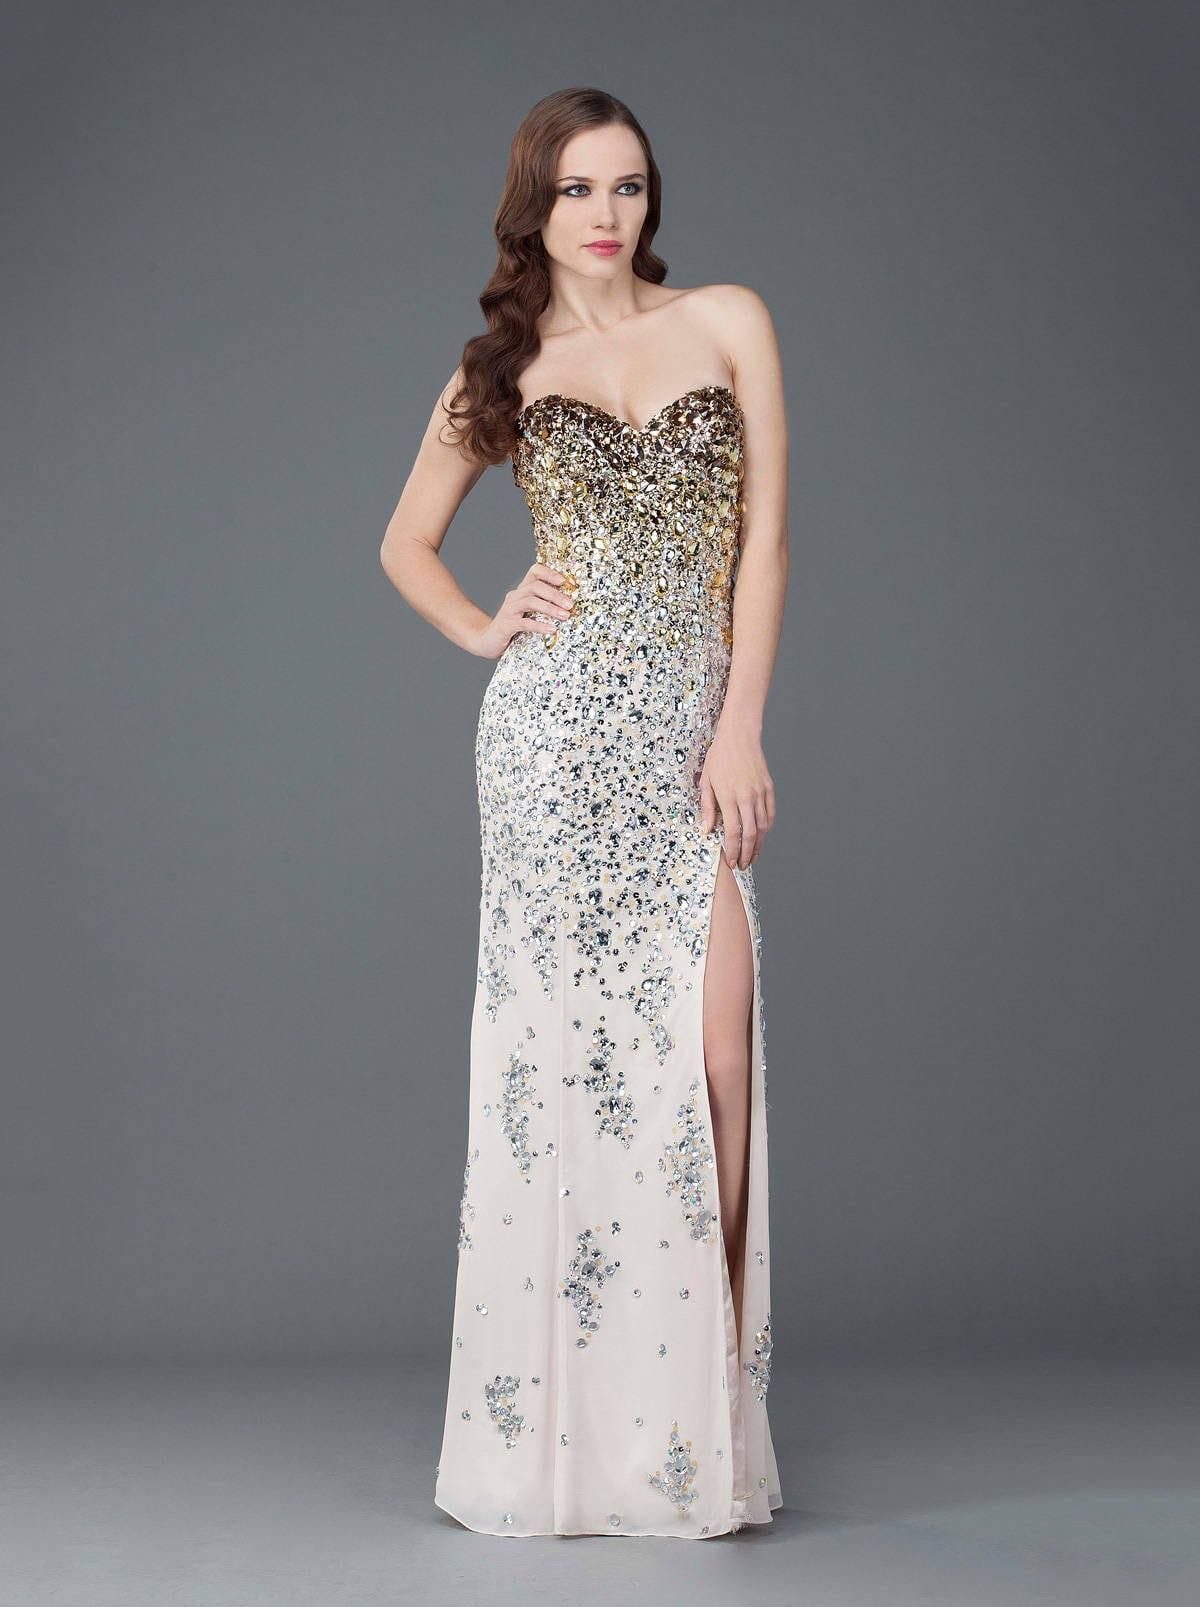 b46394267de Darius Cordell Fashion Ltd has strapless evening gowns like this one that  is fully beaded and has a slit on one side.